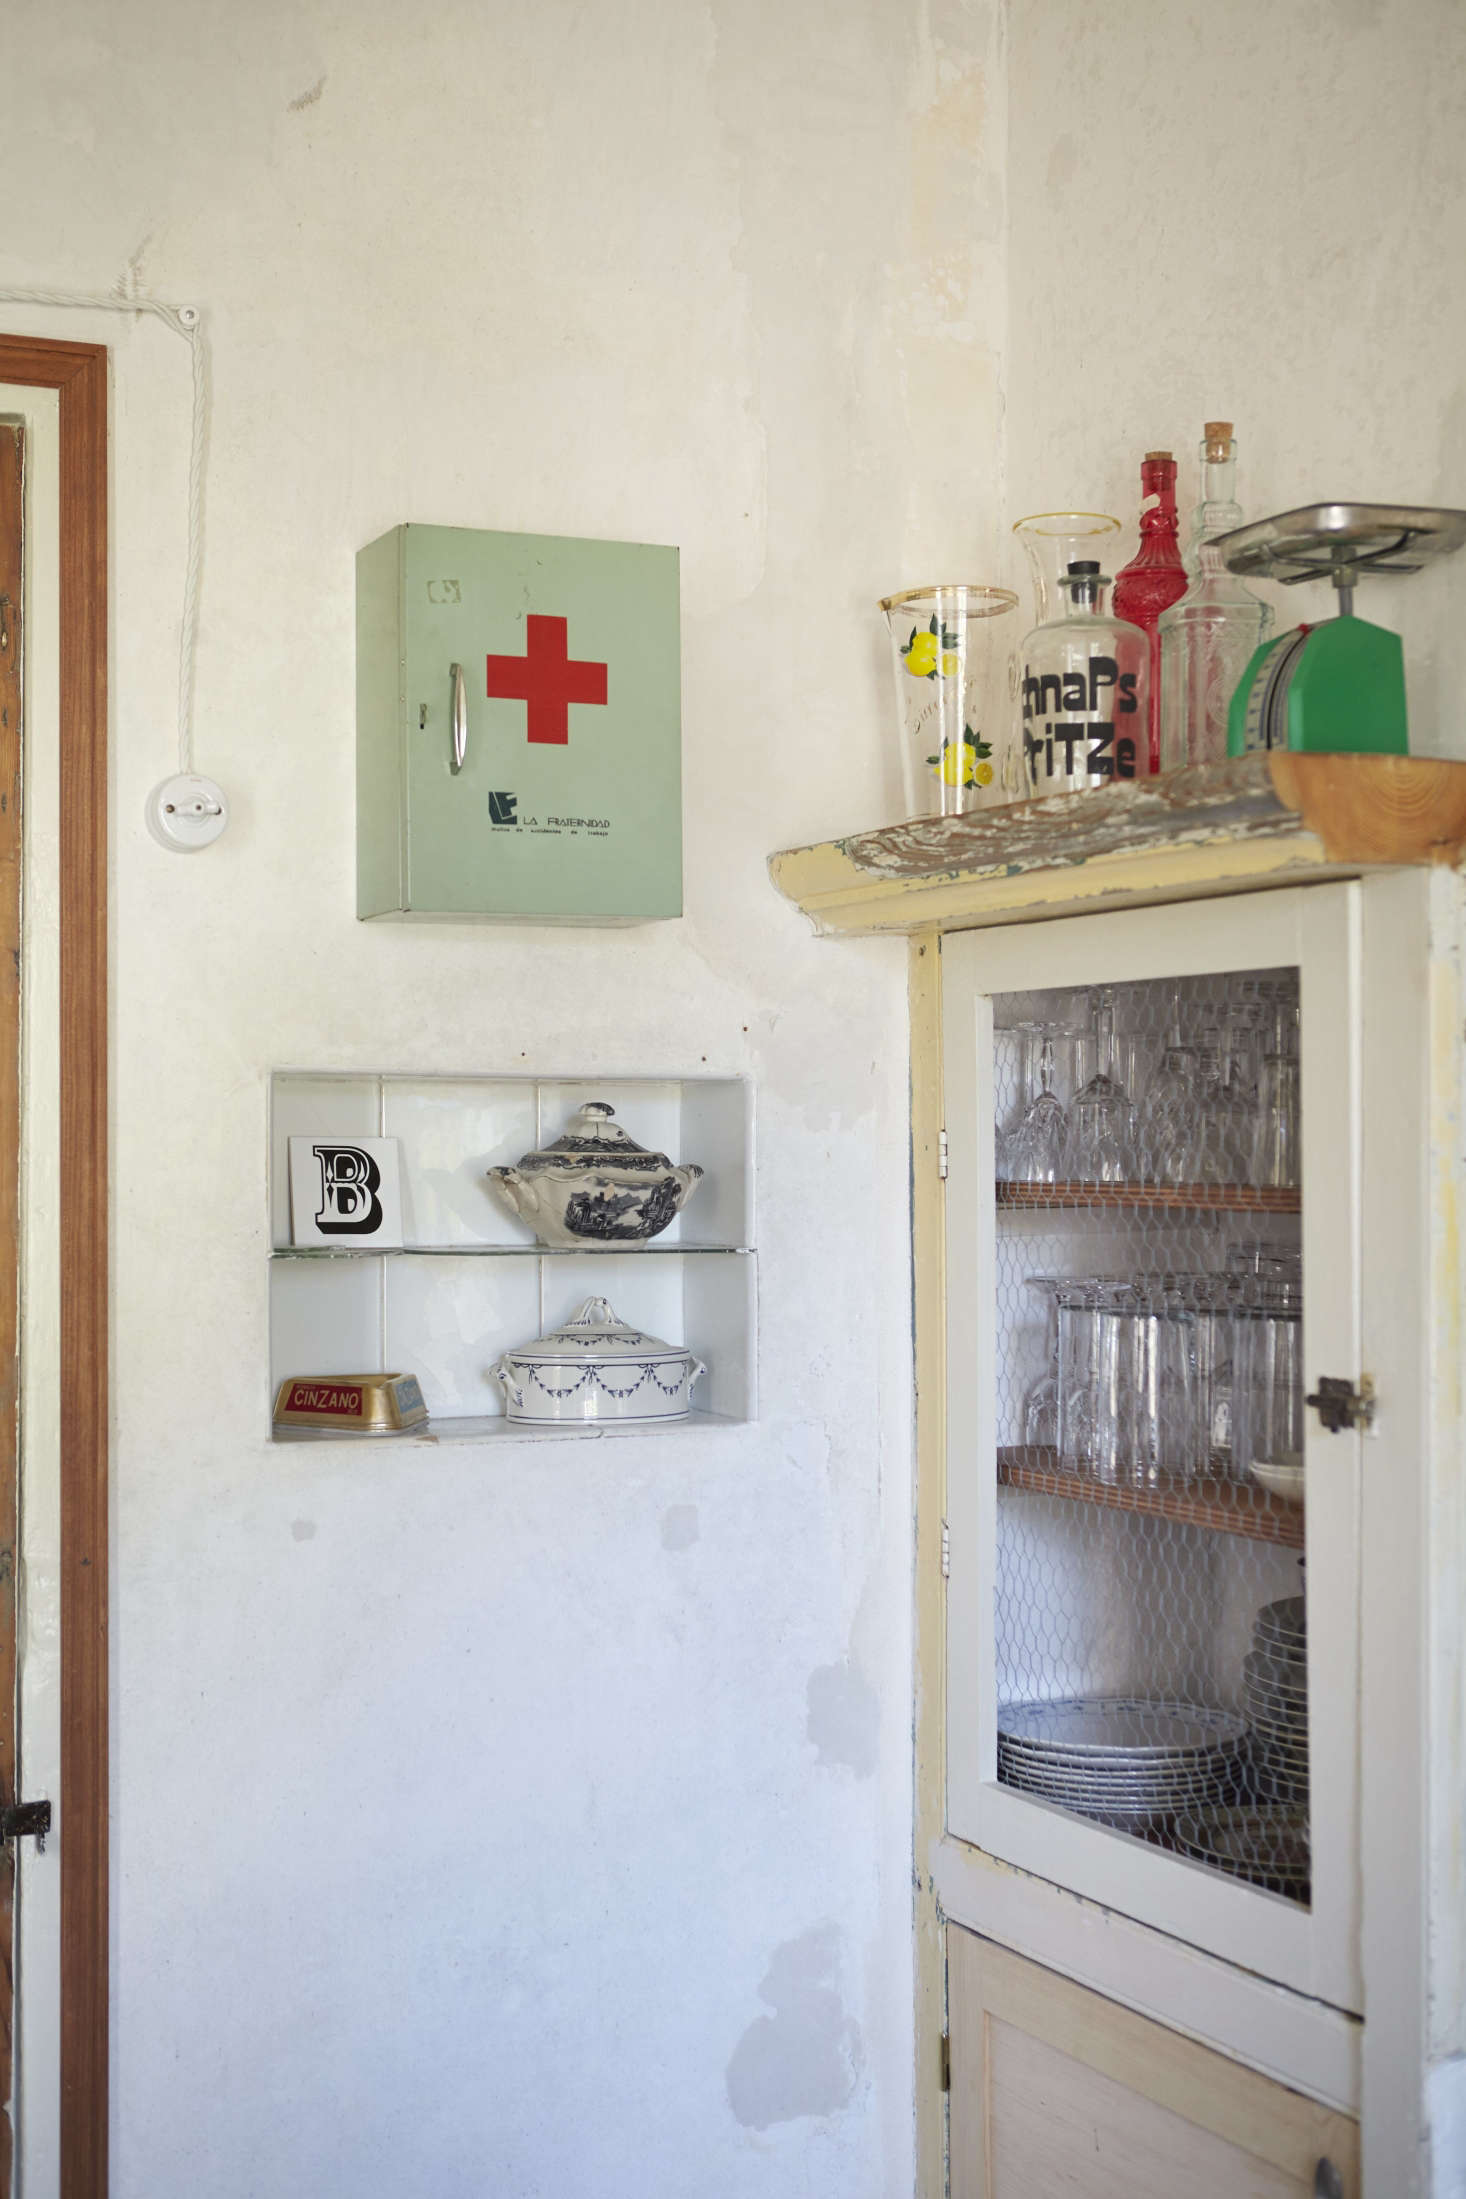 The medicine cabinet—used to hold vitamins and meds—traveled with Benito and Pol to their new house.